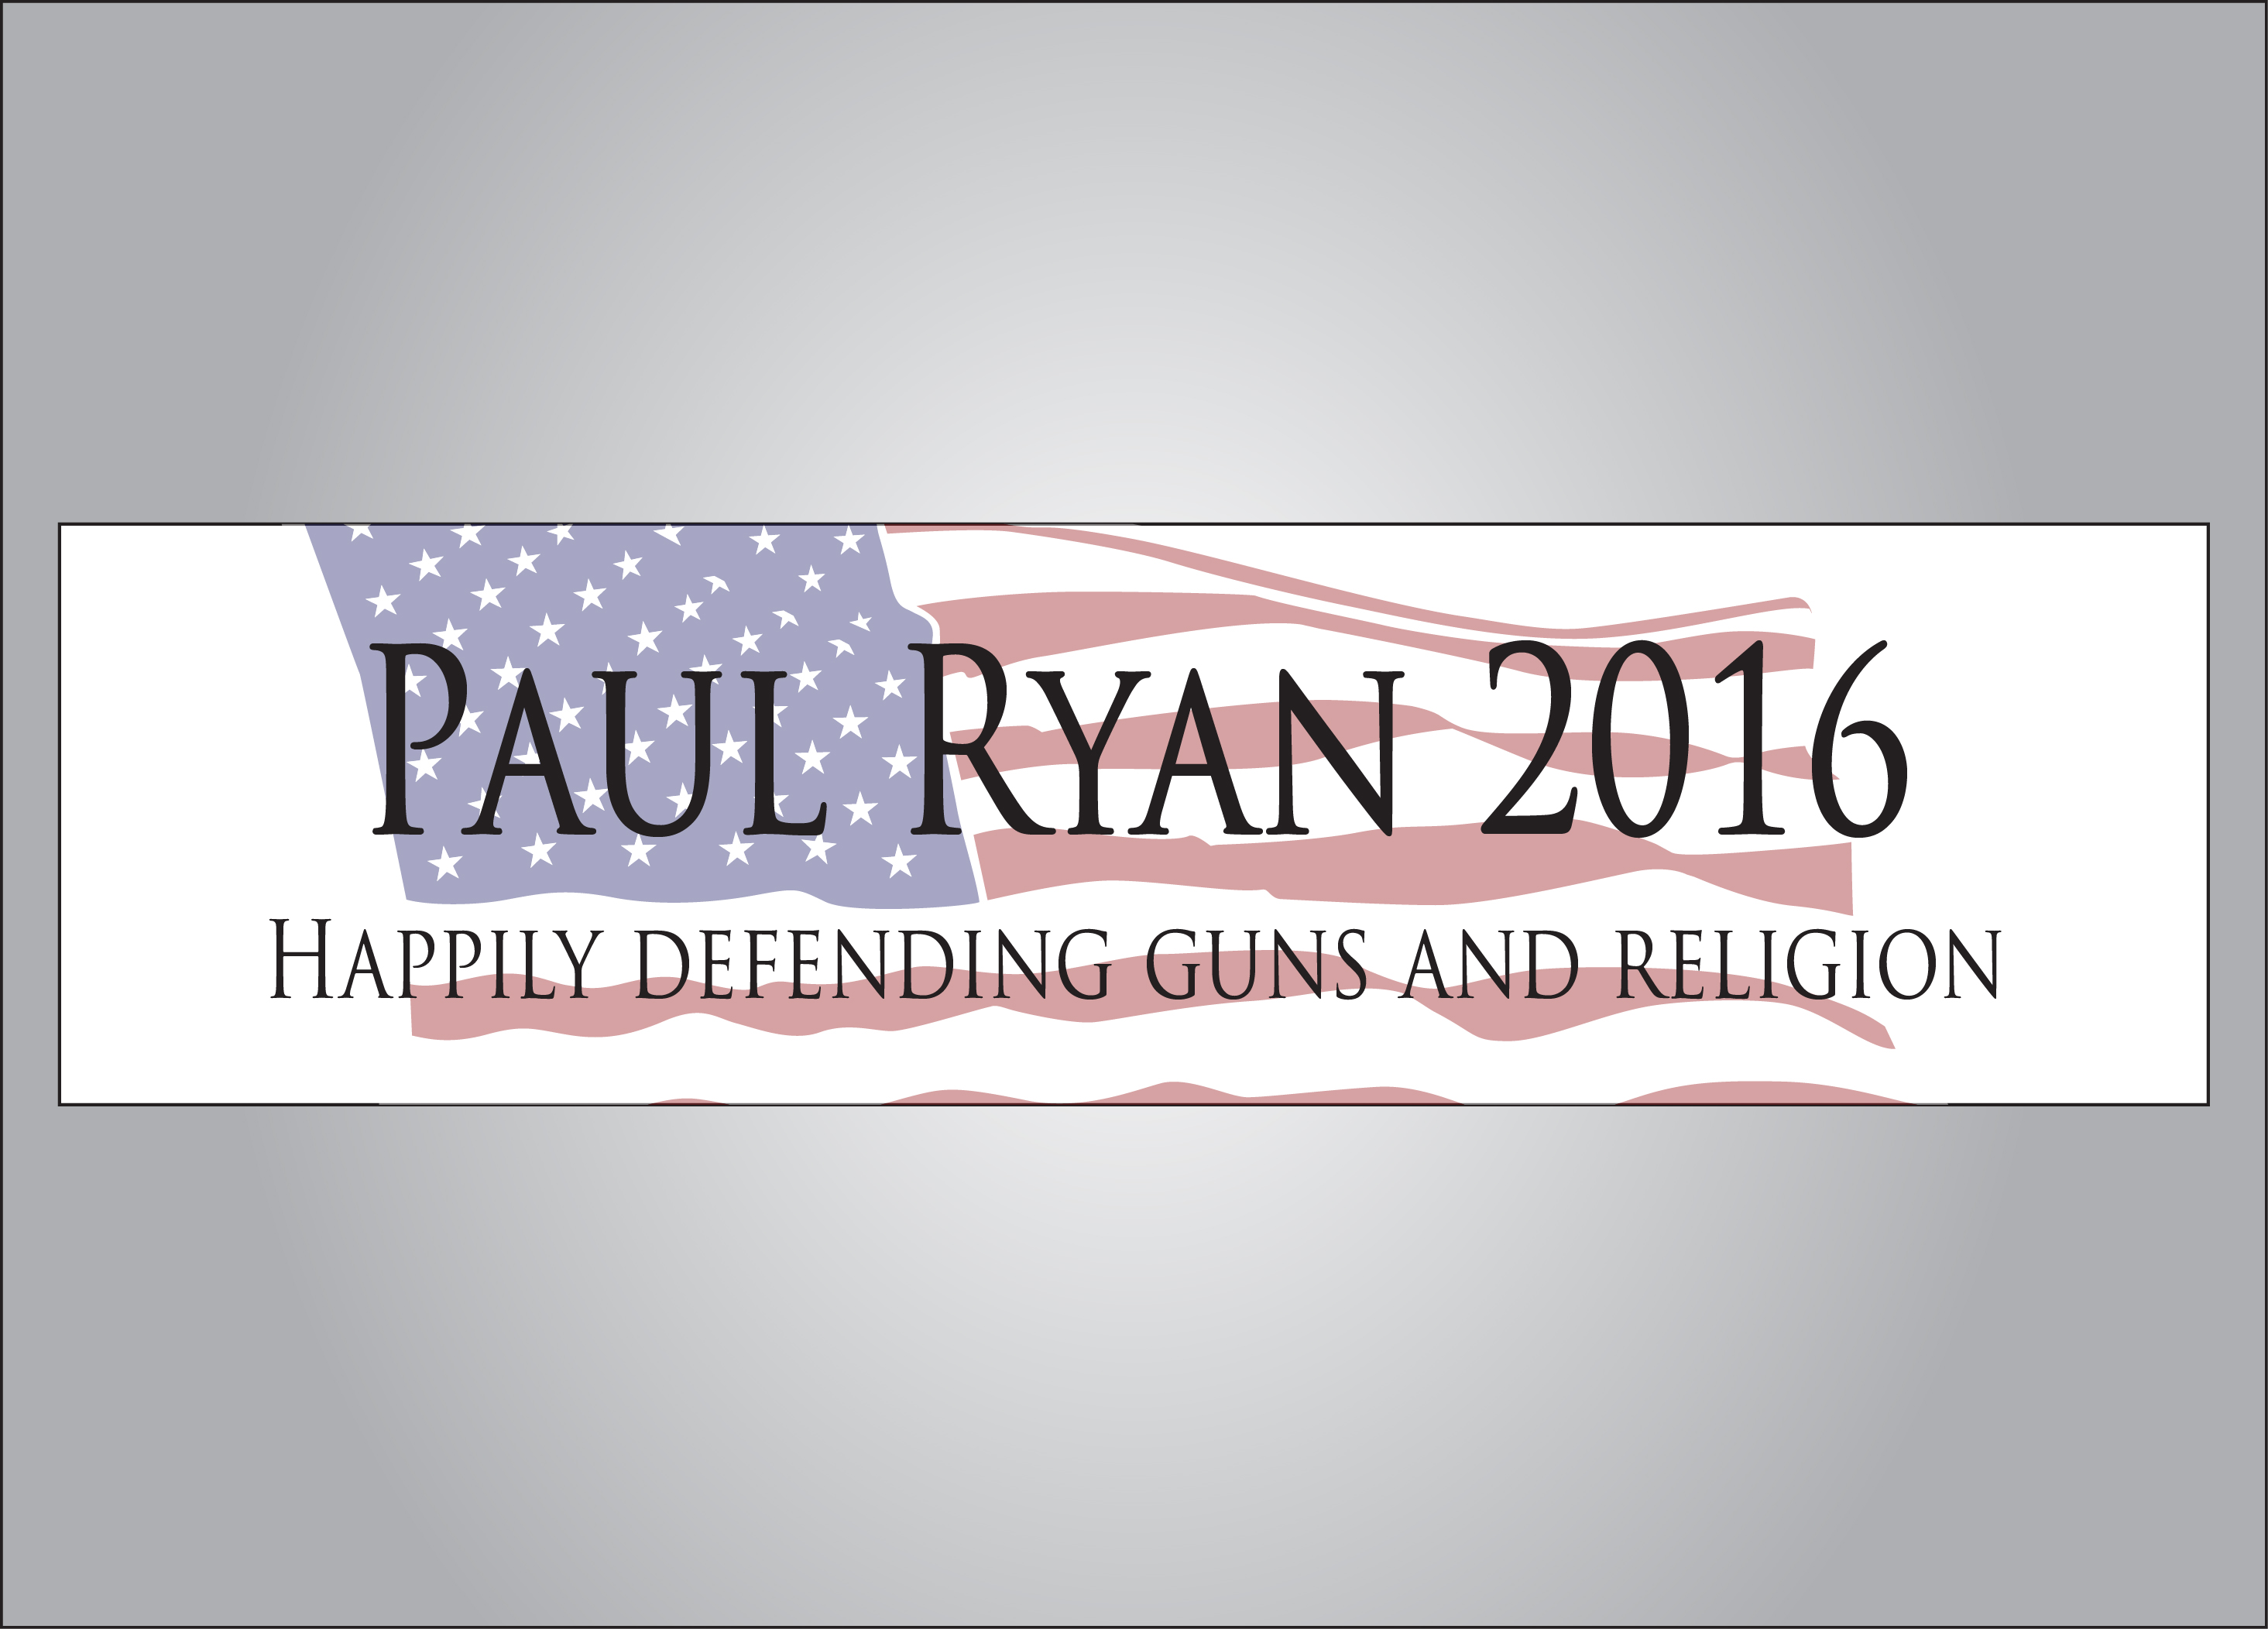 Vote Paul Ryan 2016 political bumper sticker